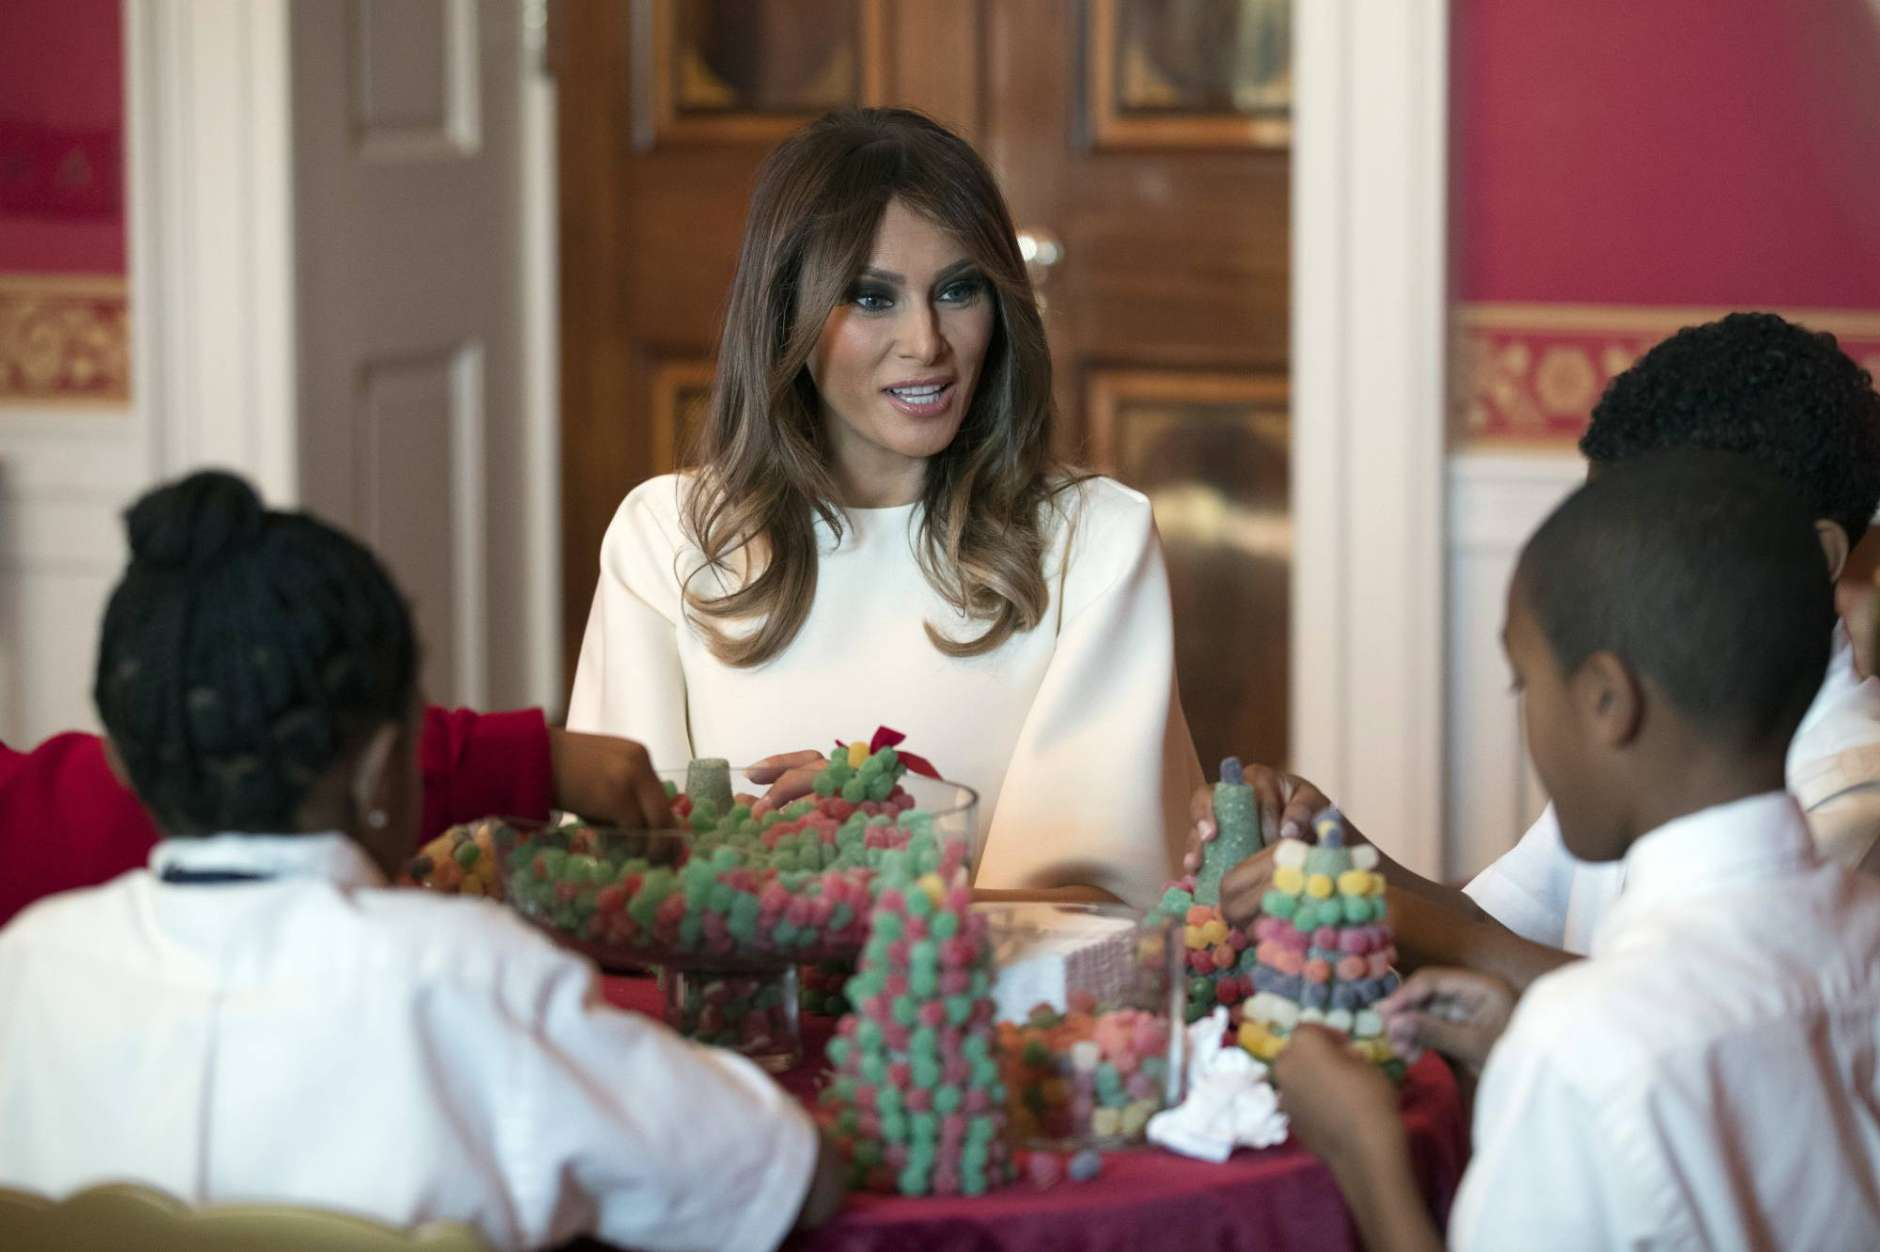 "First lady Melania Trump visits with children in the Red Room working on holiday treats among the 2017 holiday decorations with the theme ""Time-Honored Traditions"" at the White House in Washington, Monday, Nov. 27, 2017. The First Lady honored 200 years of holiday traditions at the White House. (AP Photo/Carolyn Kaster)"